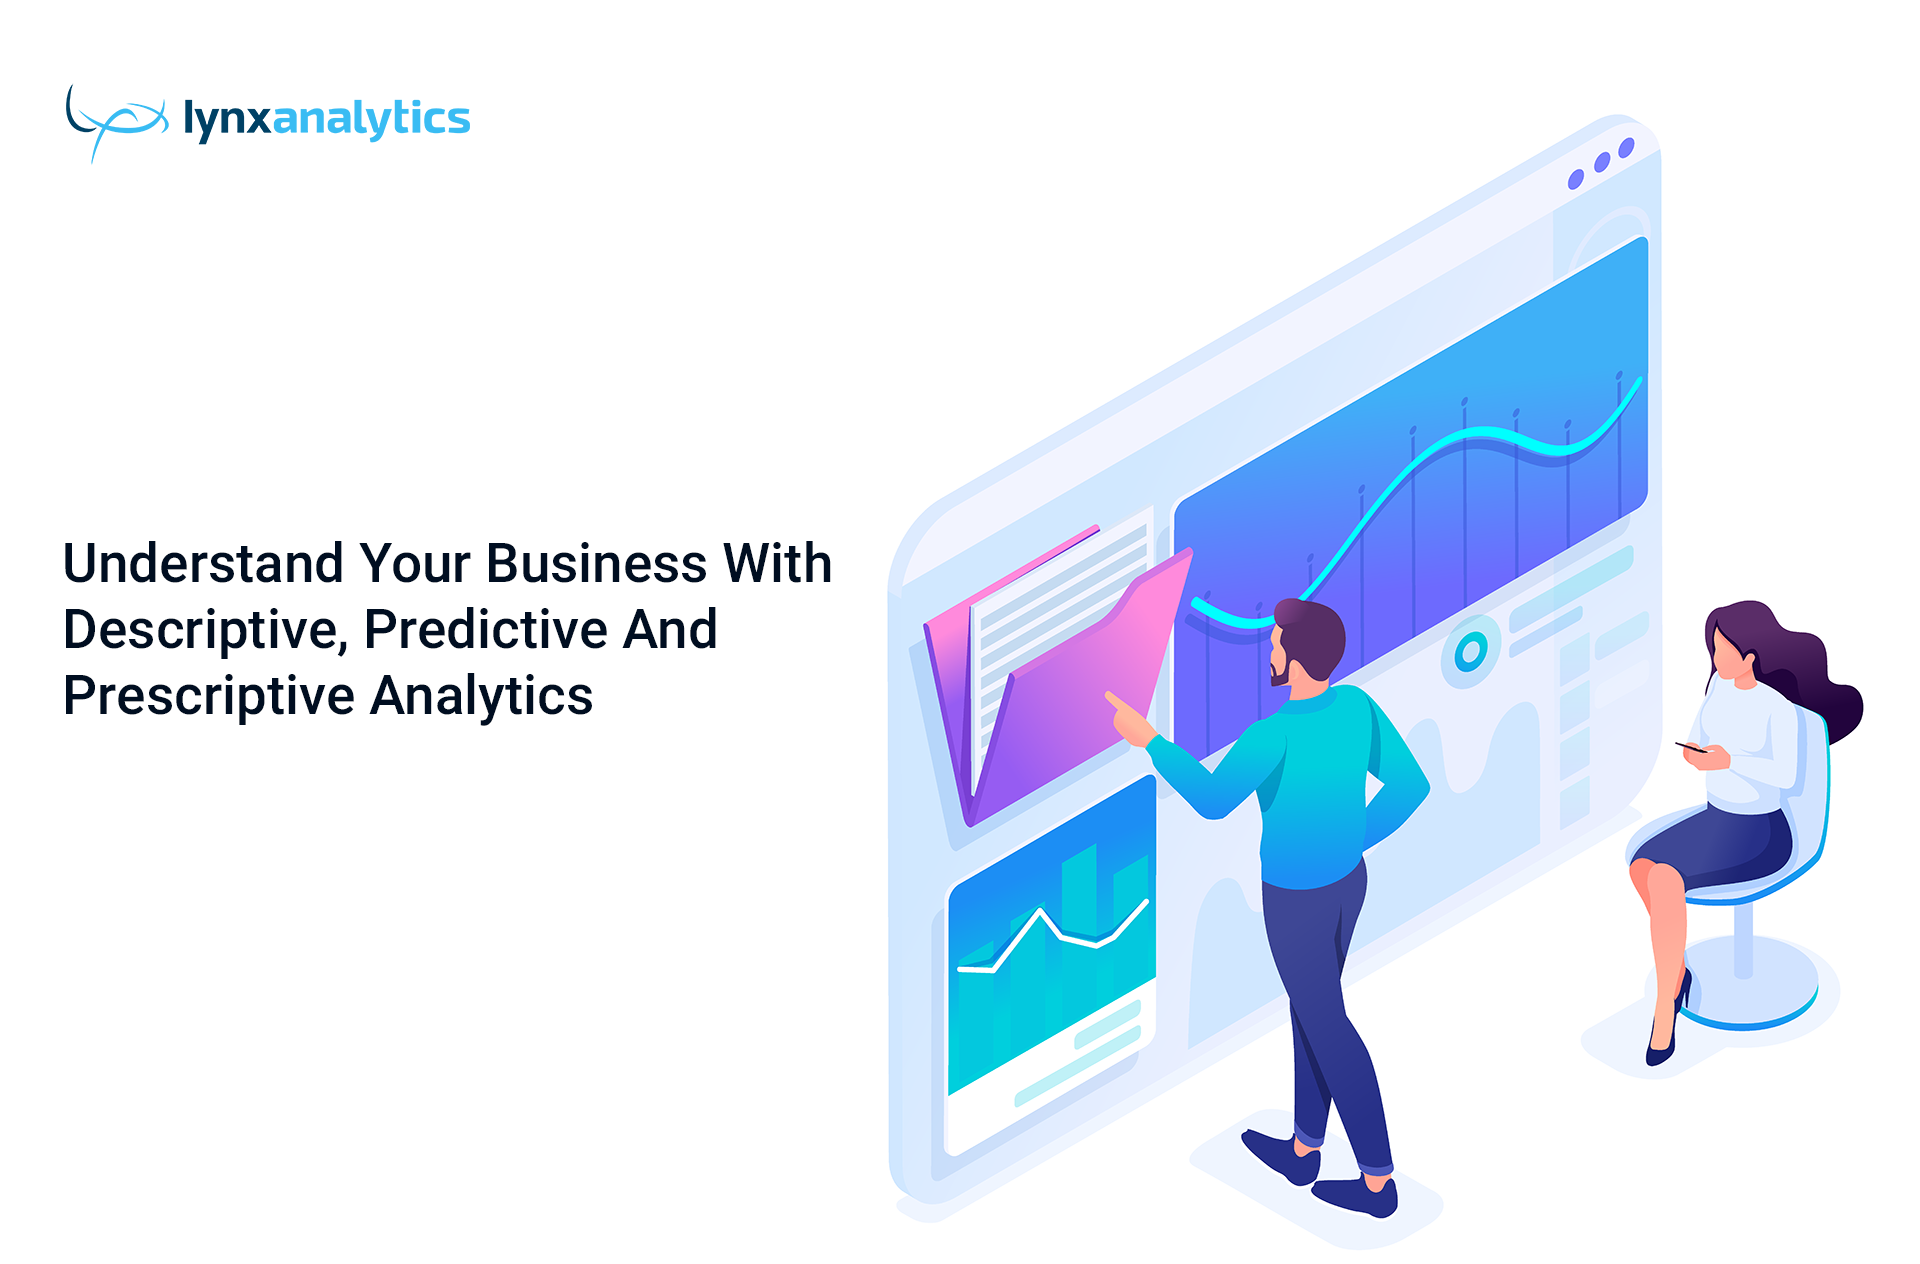 Descriptive, Predictive and Prescriptive Analytics